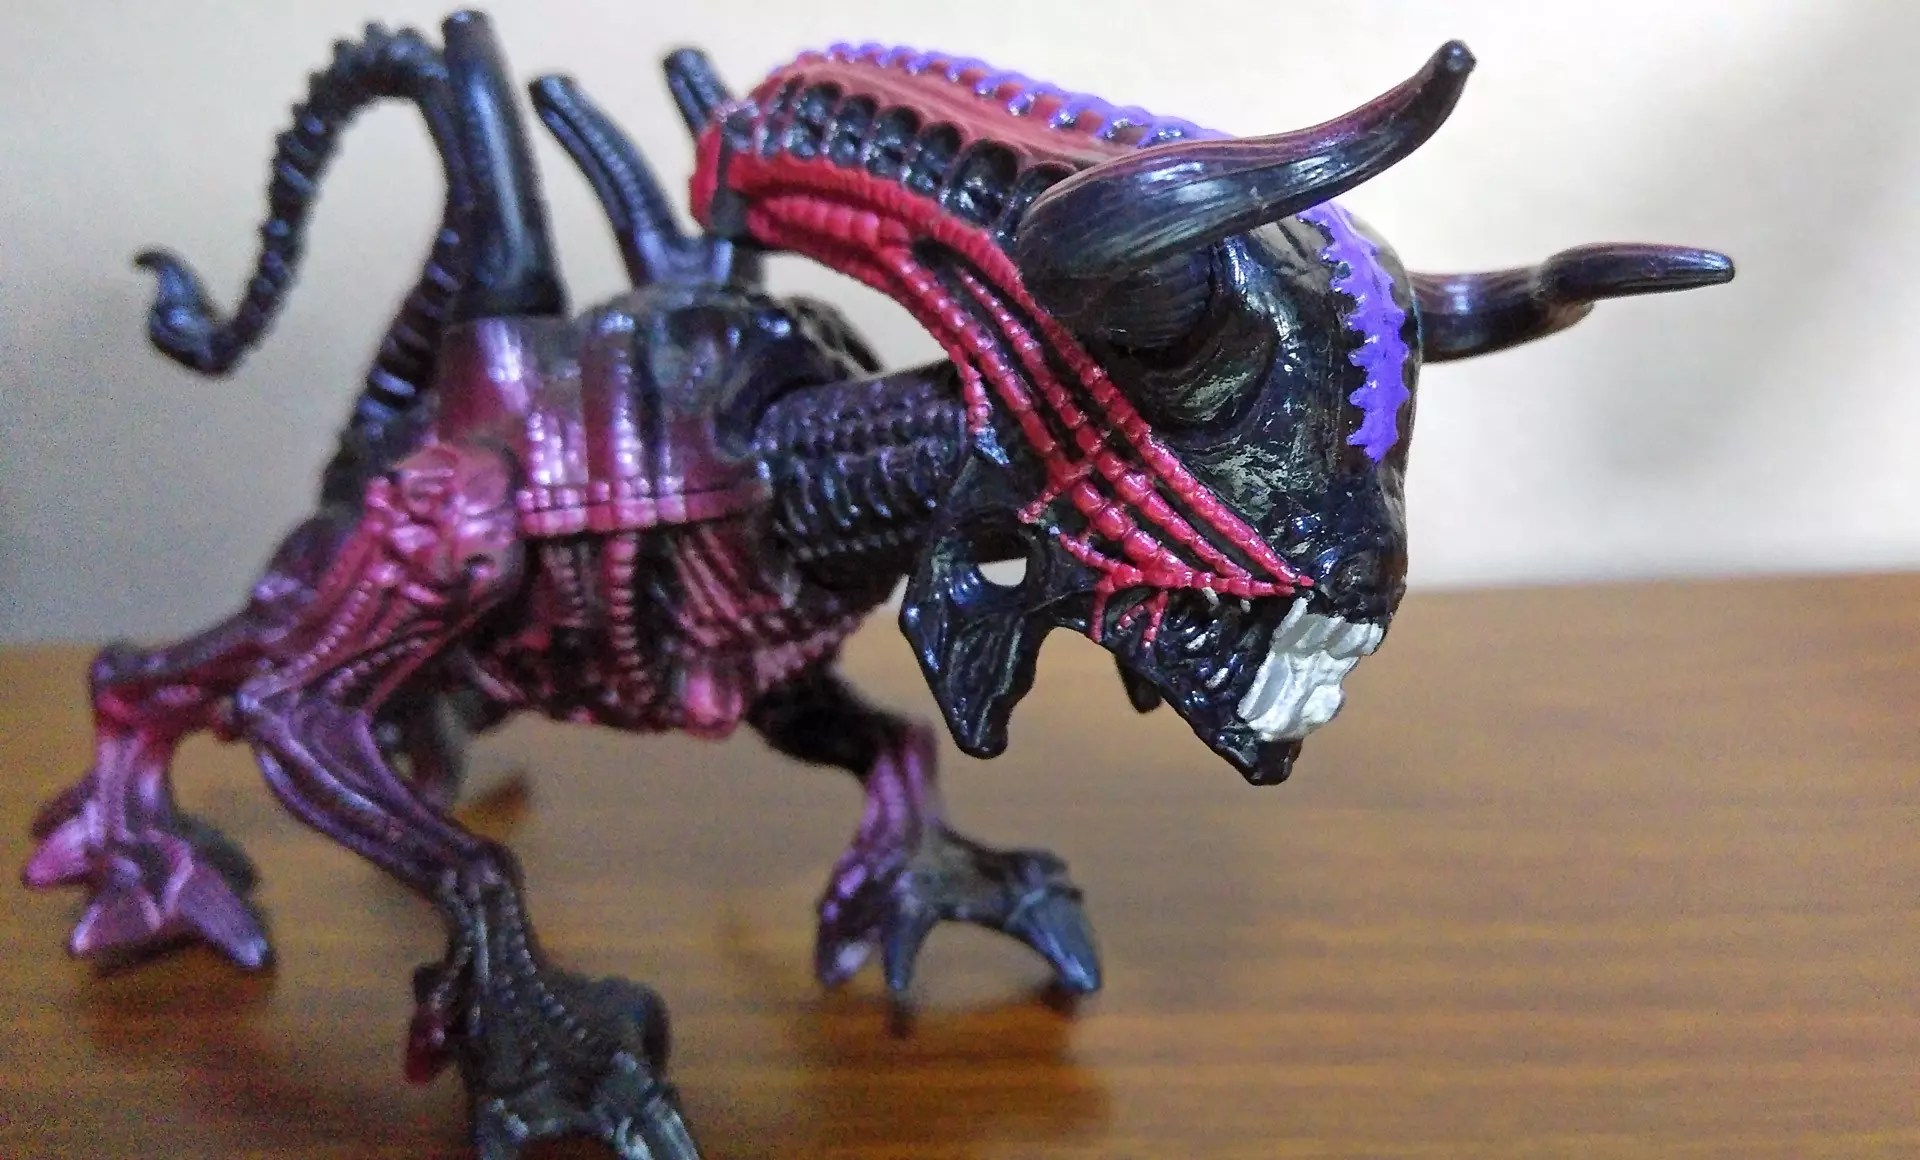 Retro Xenomorph Toy.